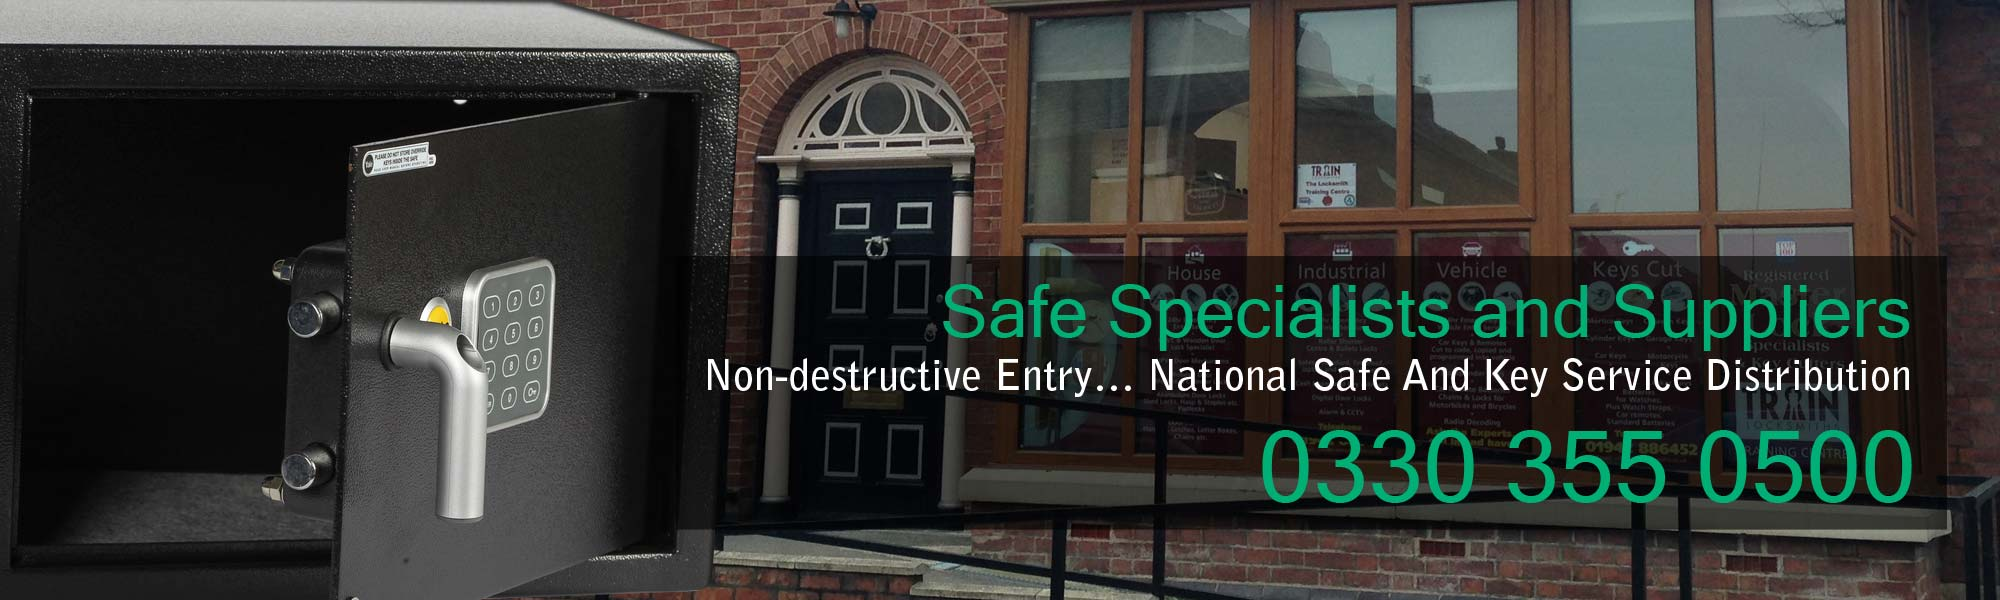 Safe Specialists and Suppliers